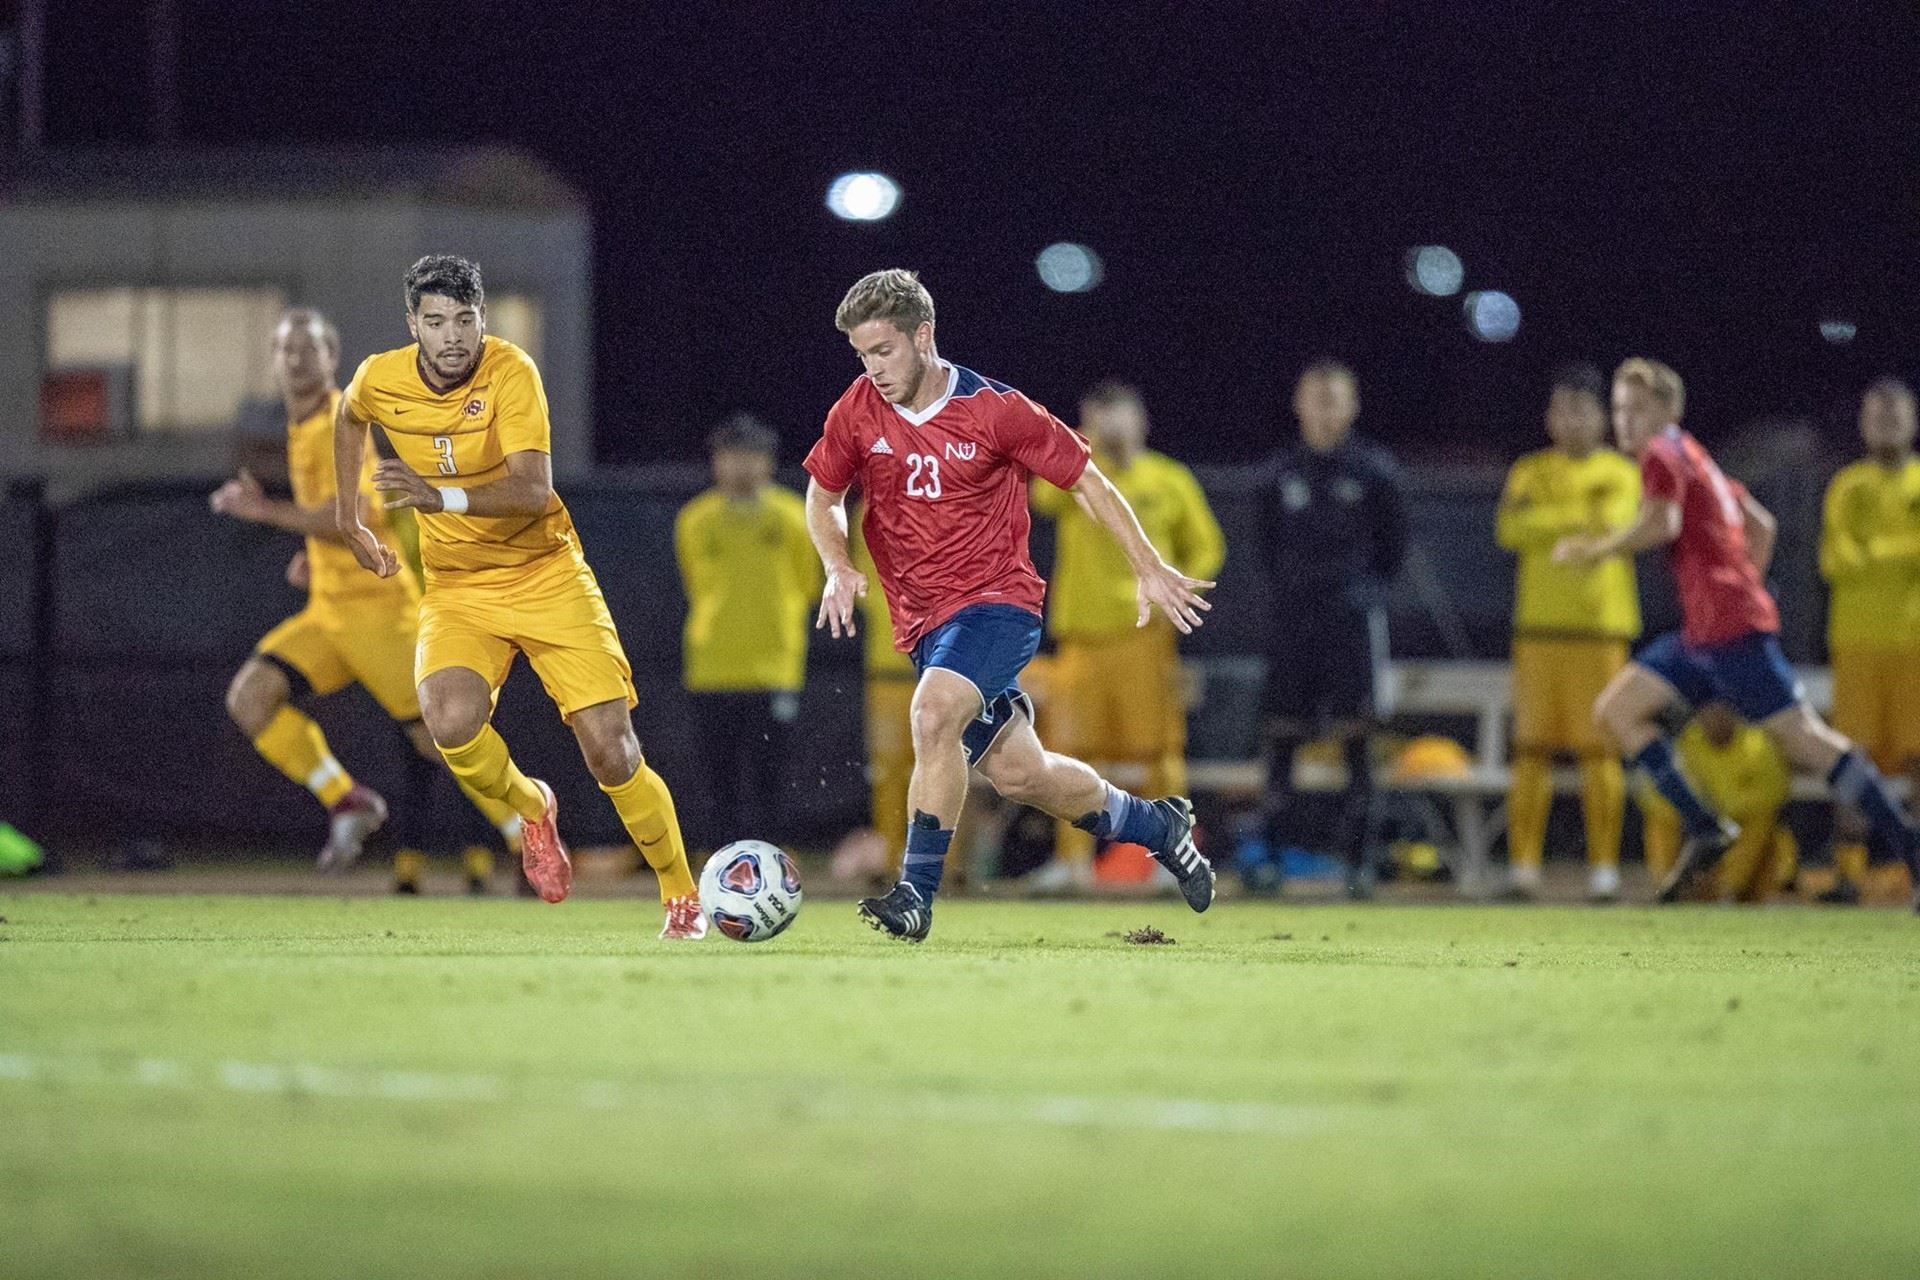 Men's soccer focuses on team culture during off-season